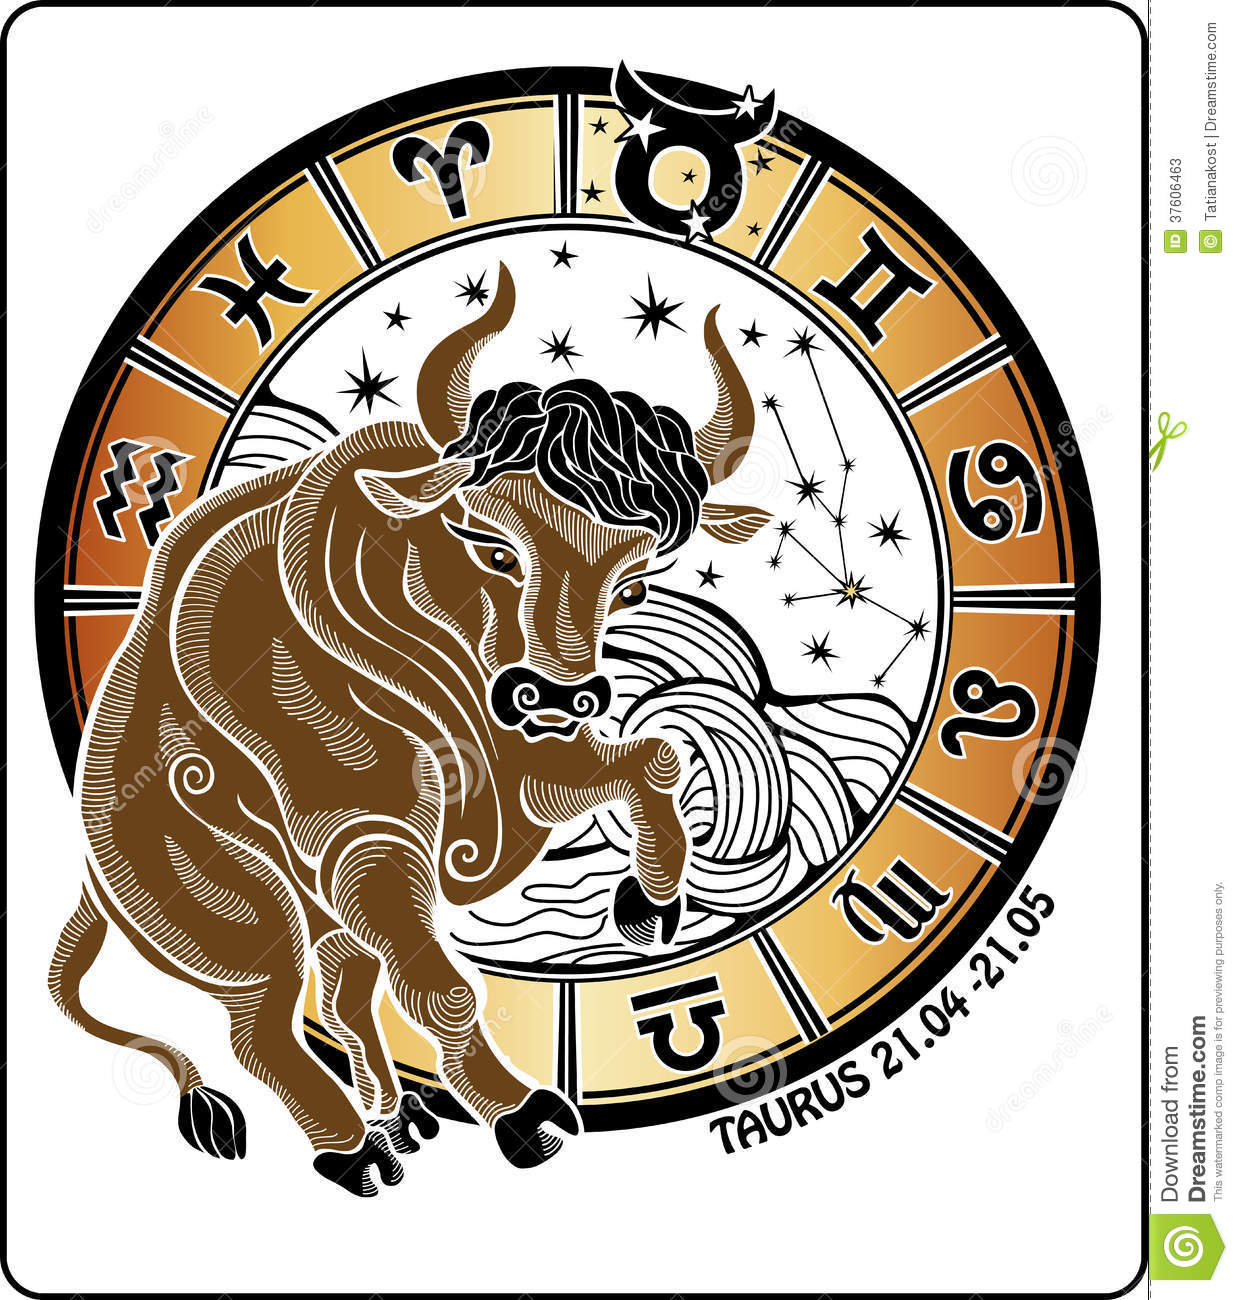 Taurus And The Zodiac Sign.Horoscope Circle. Vecto Stock ...